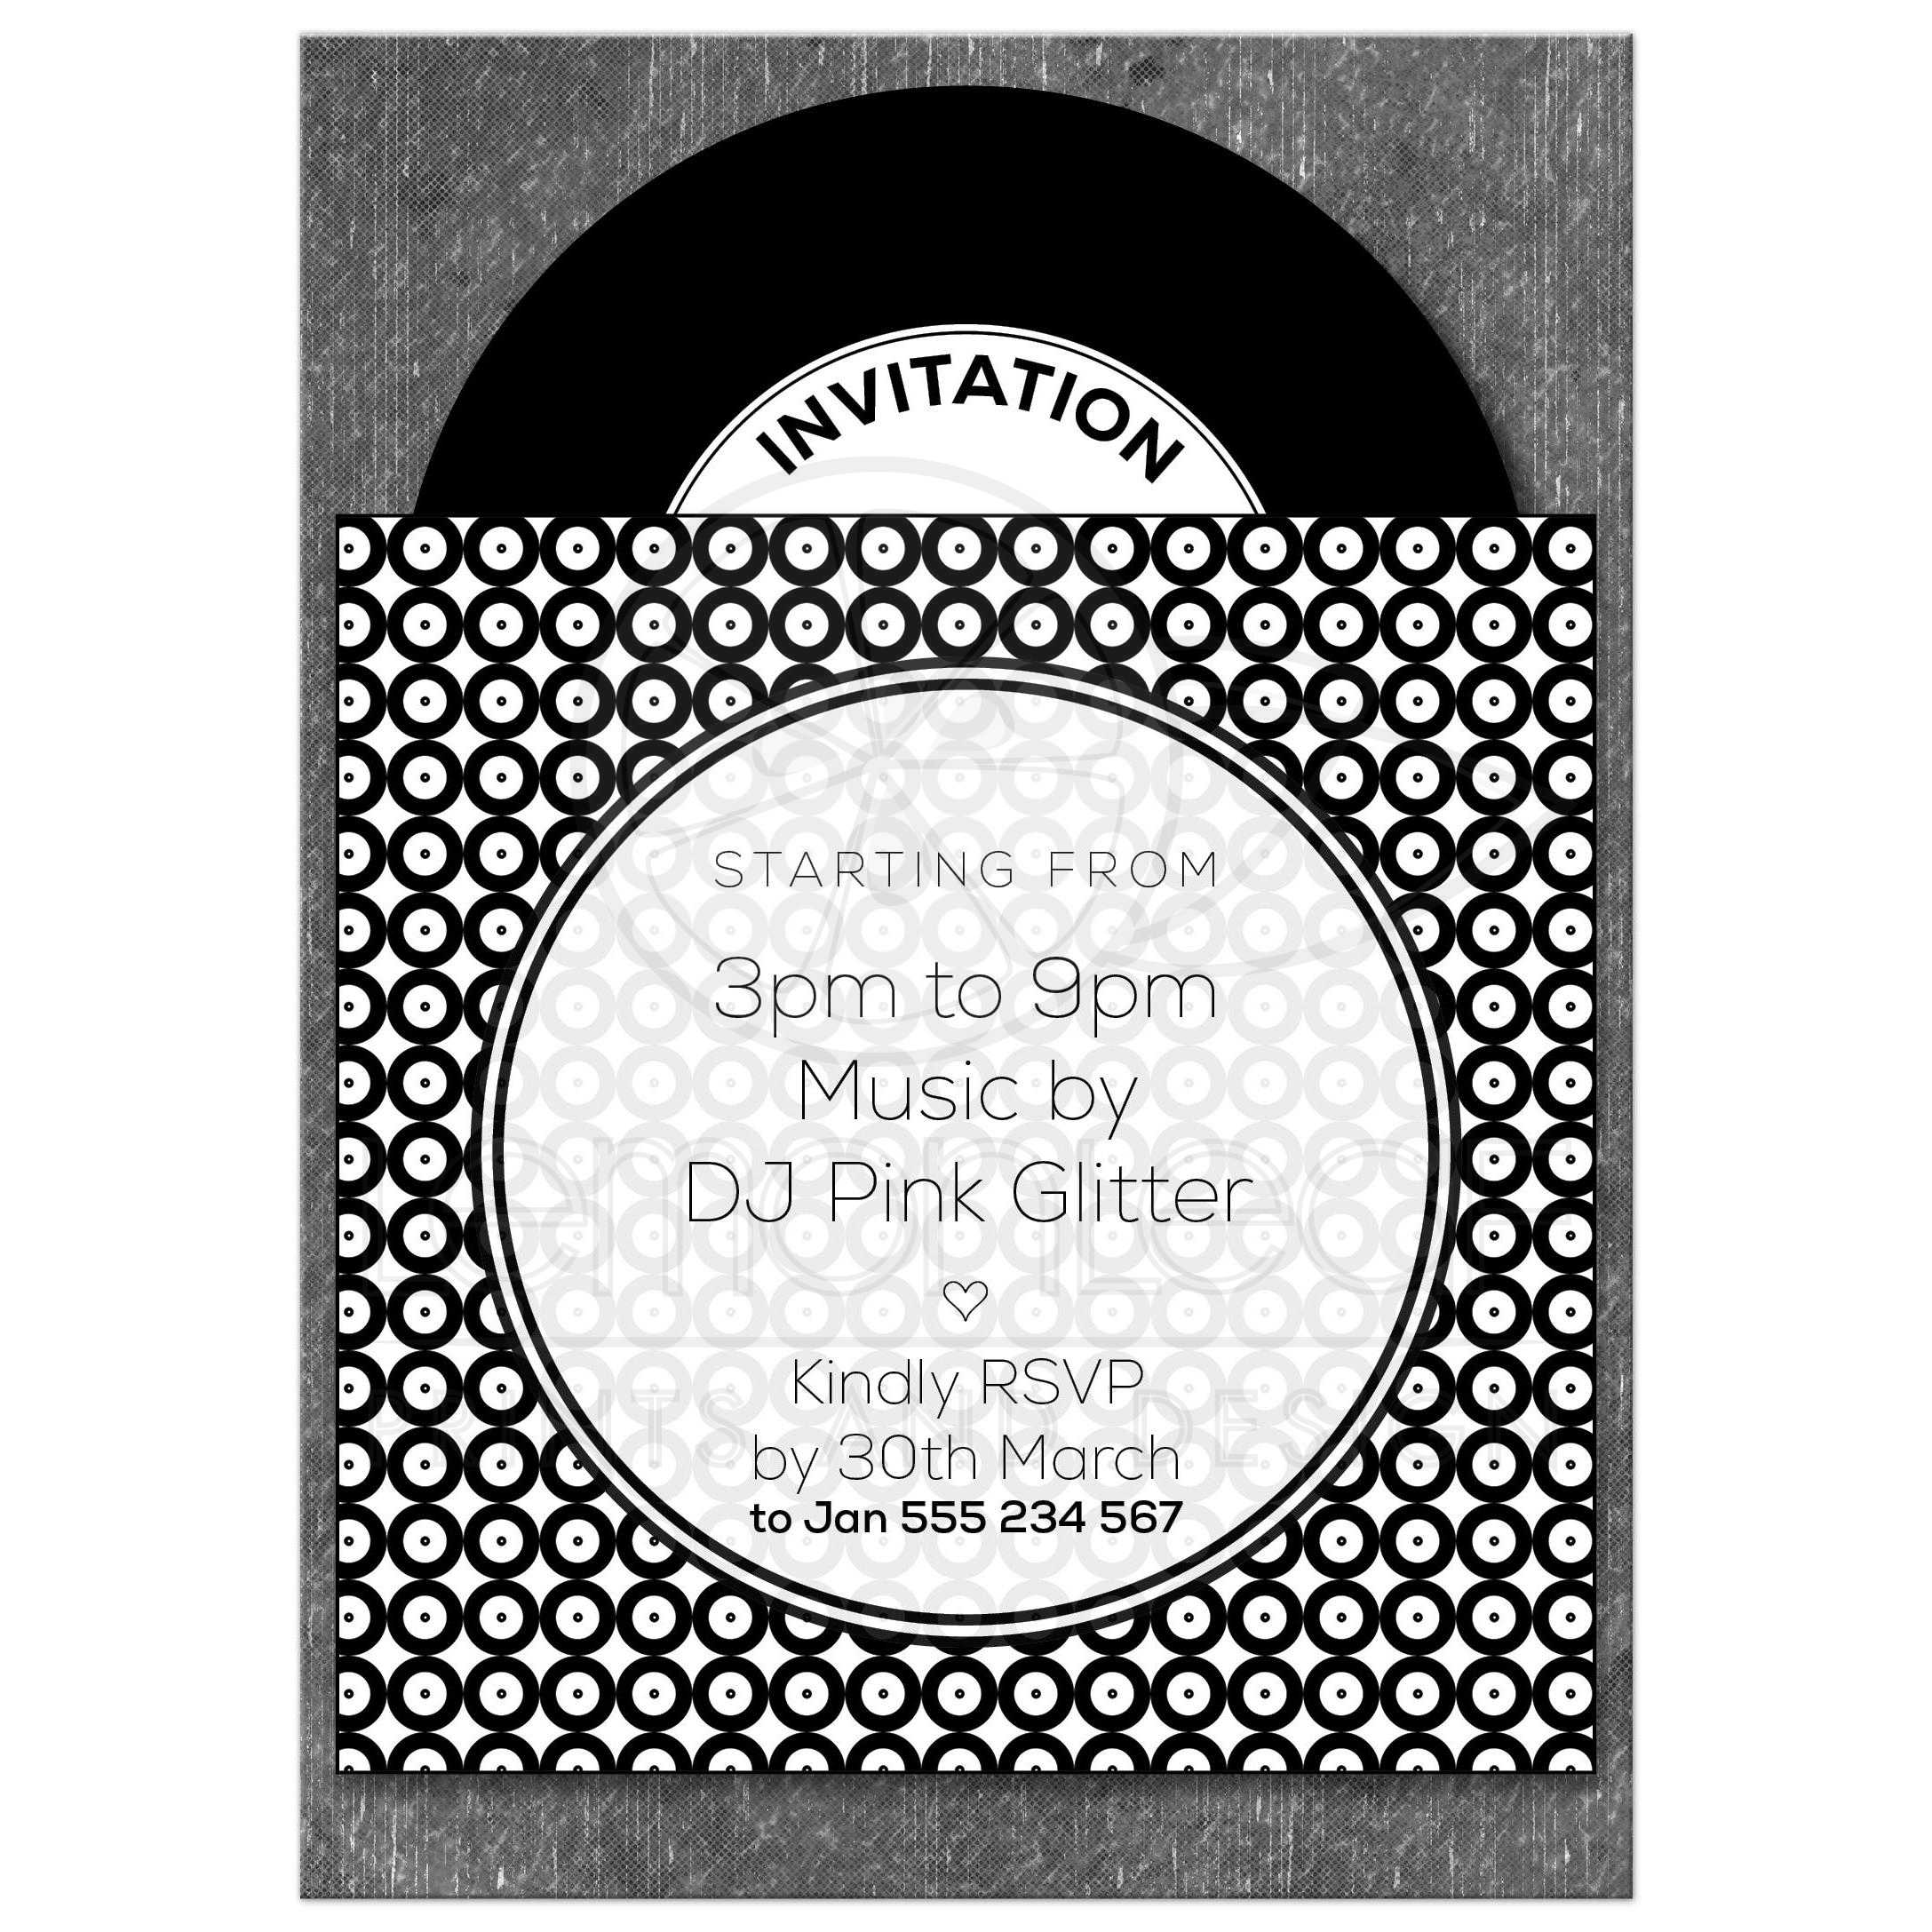 Vinyl Record Birthday Dance Party Invitation | Black and White